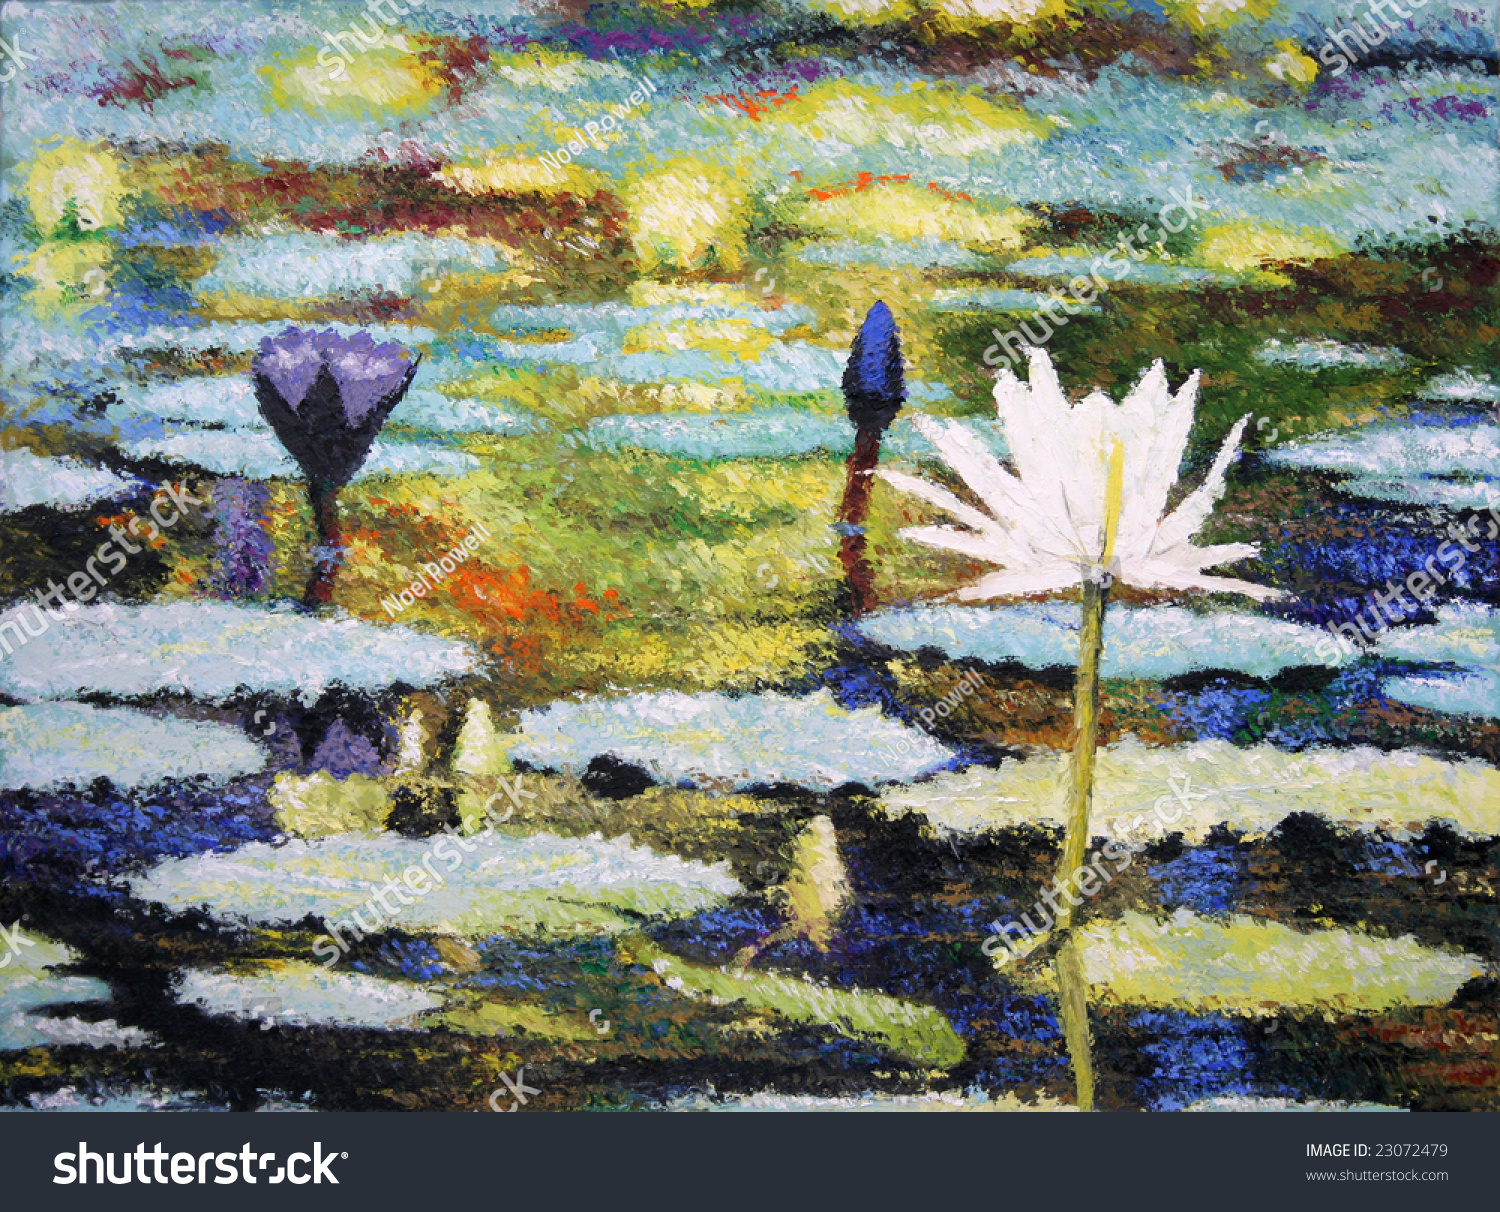 photo of an impressionist painting of lilies original art by me 23072479 shutterstock. Black Bedroom Furniture Sets. Home Design Ideas